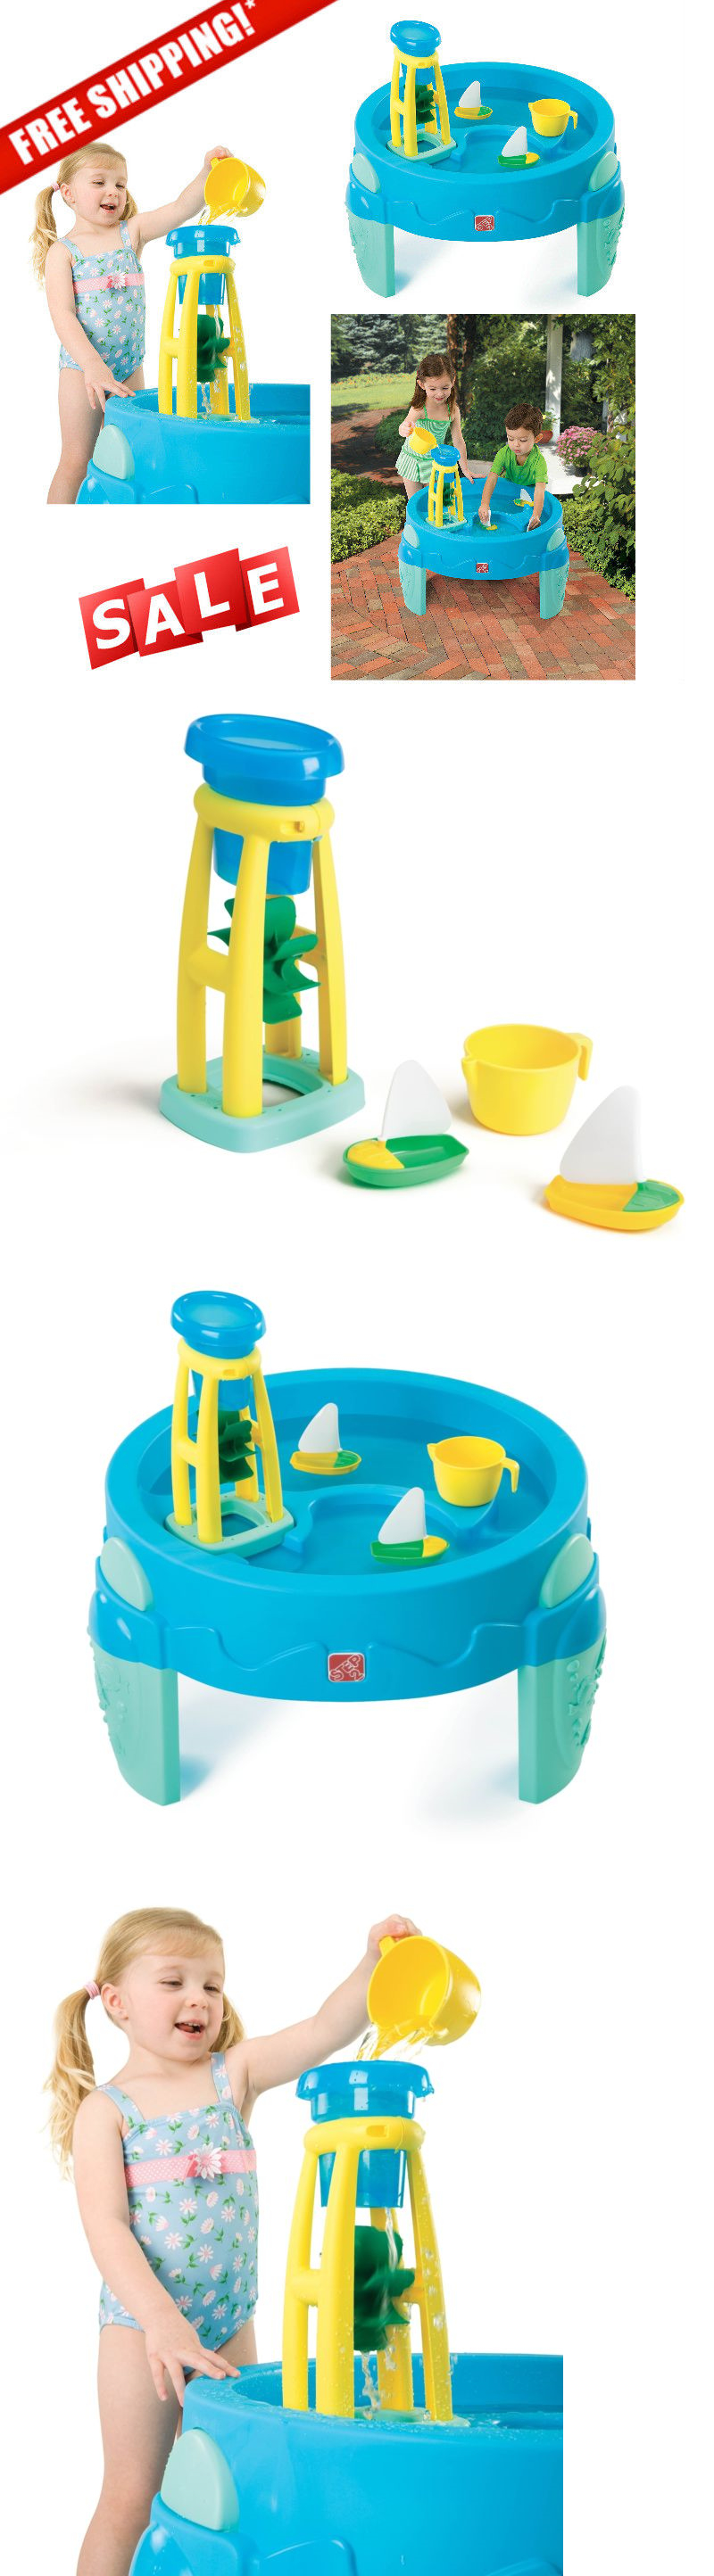 Sandbox Toys and Sandboxes Kids Toy Water Table Toddler